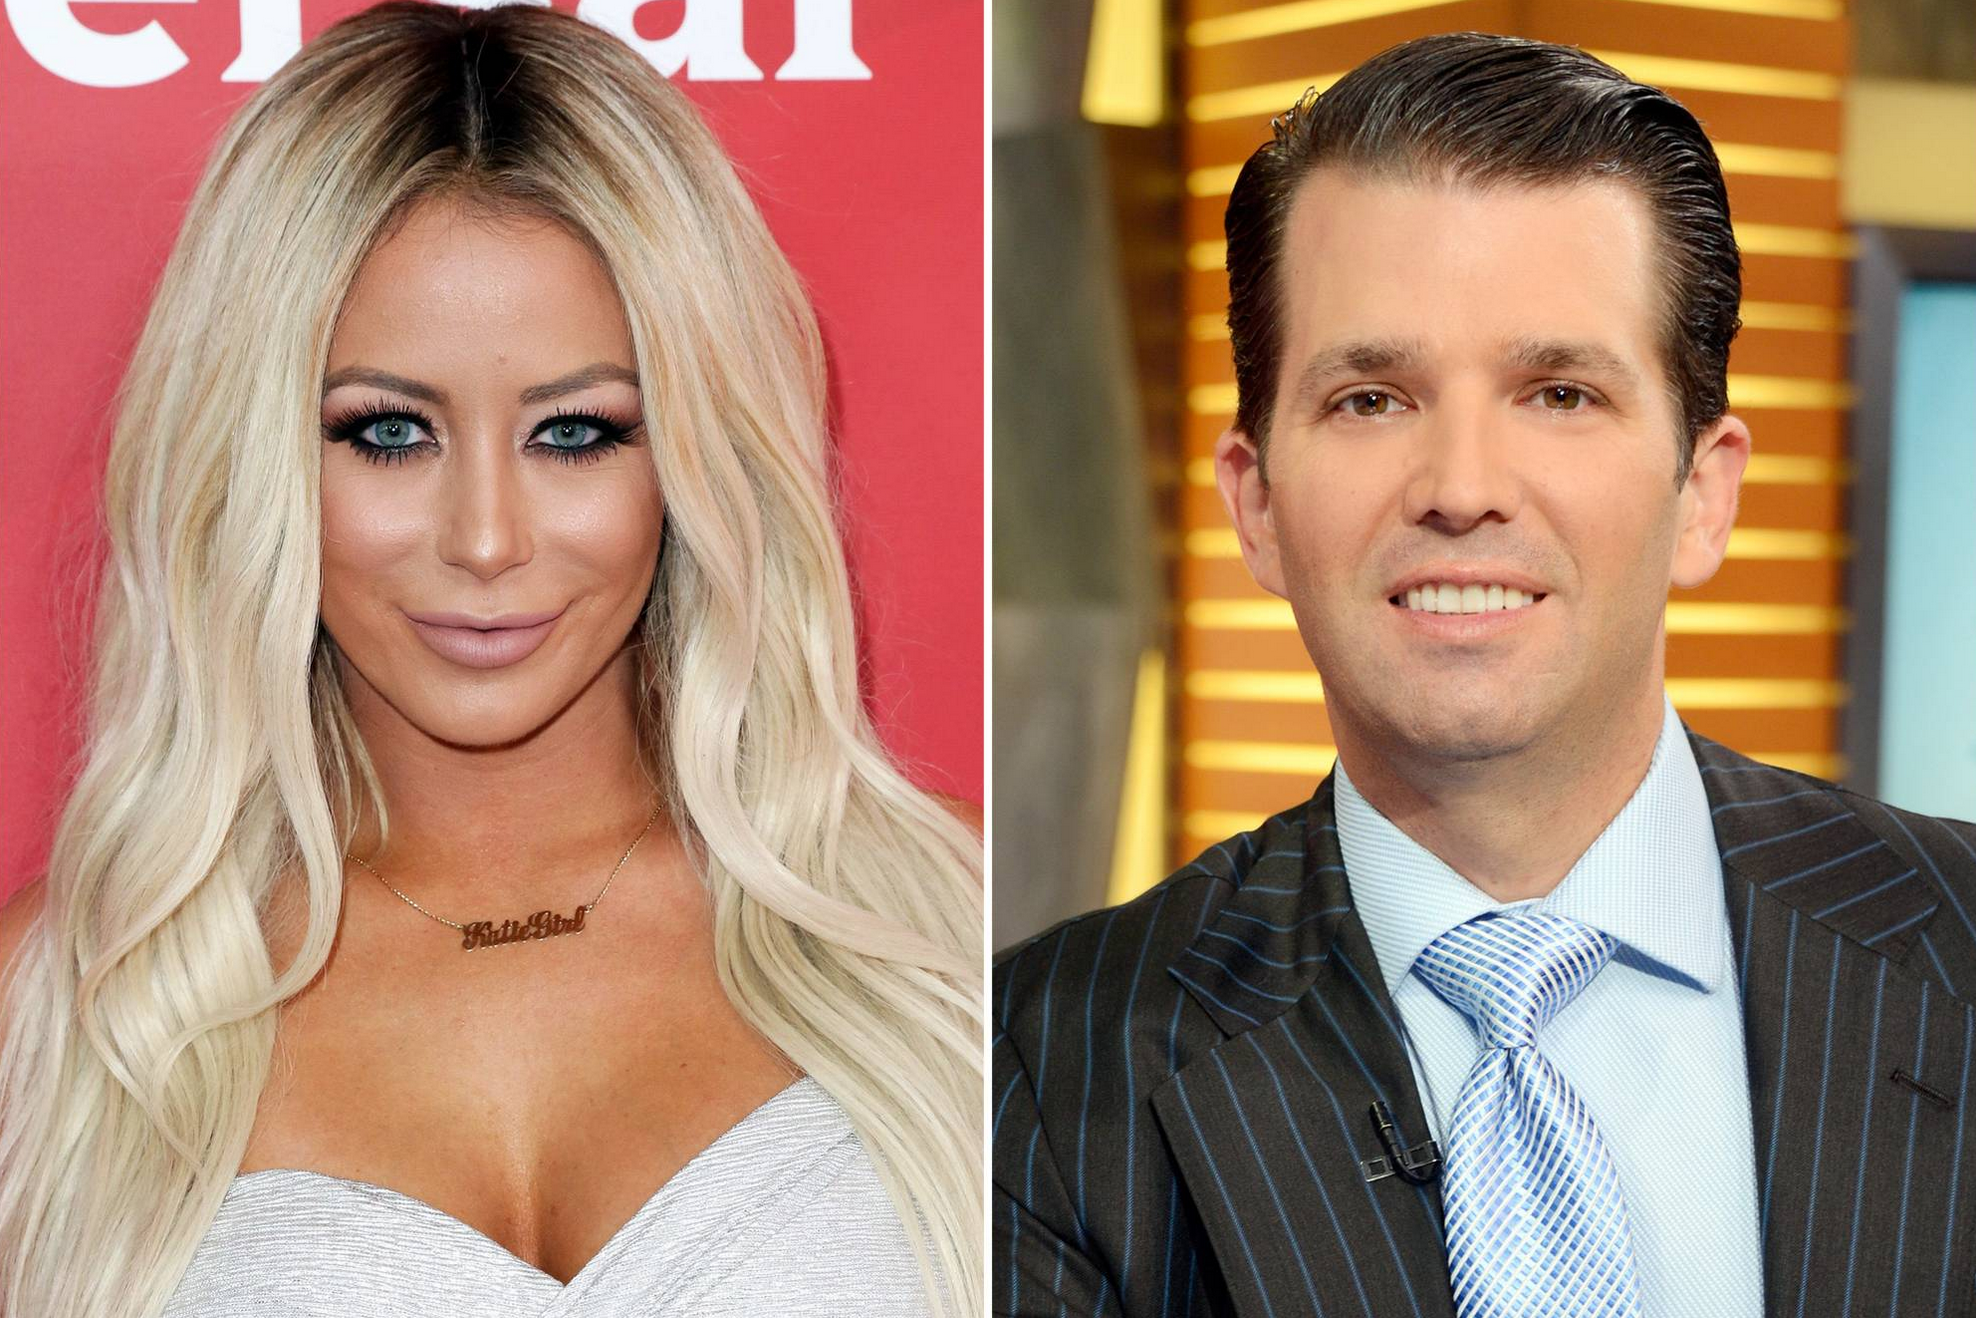 Vanessa Trump Discovered 'Sexy Texts' from Aubrey O'Day While Donald Jr. Showered